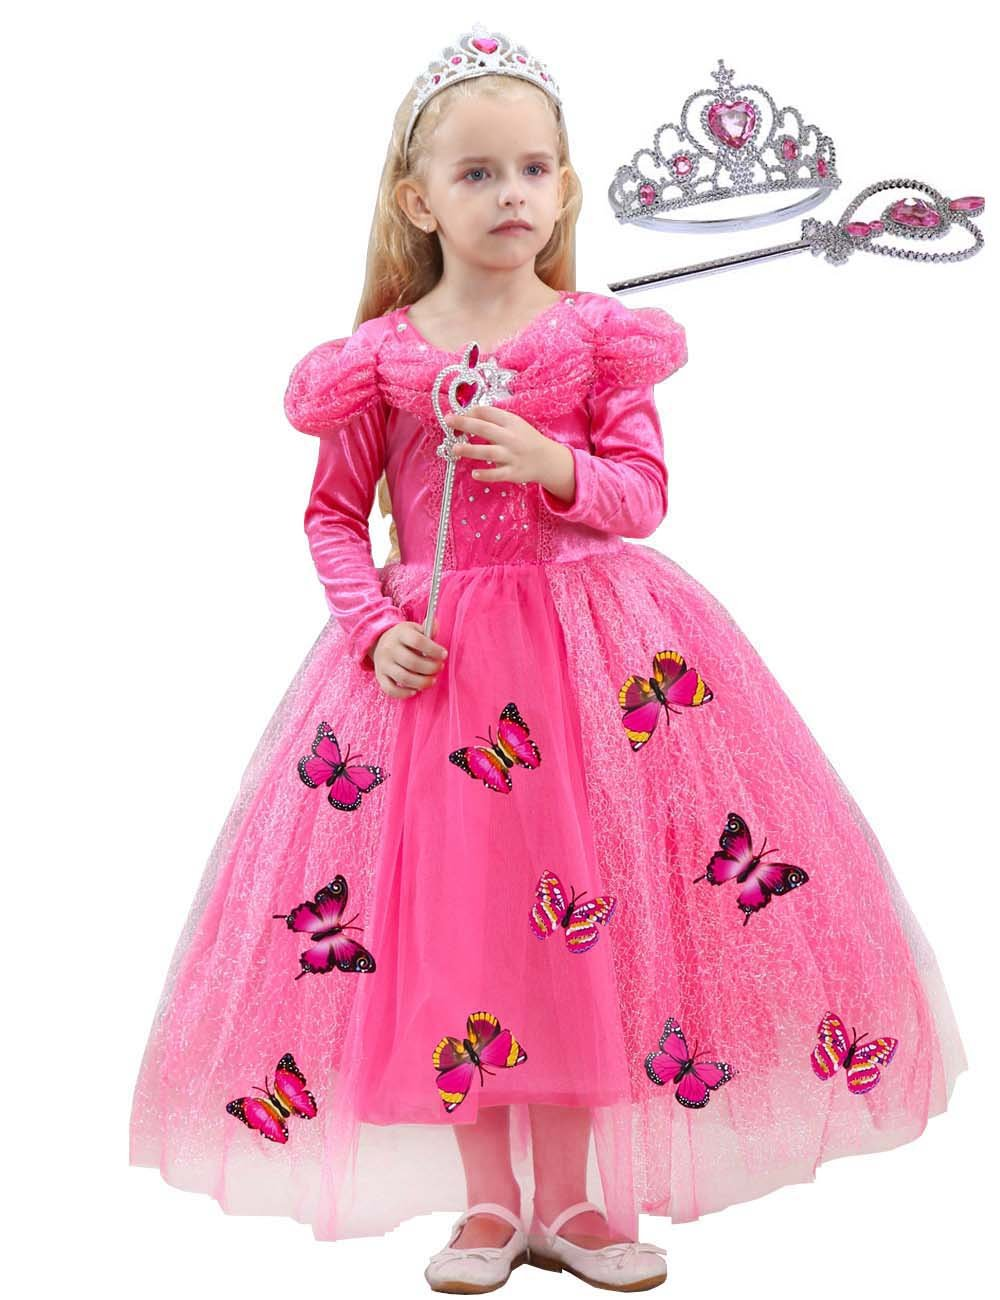 JYH Girls' New Cinderella Princess Long Sleeve Dress Butterfly Party Costumes with Crown(Watermelon red,5T-6T)